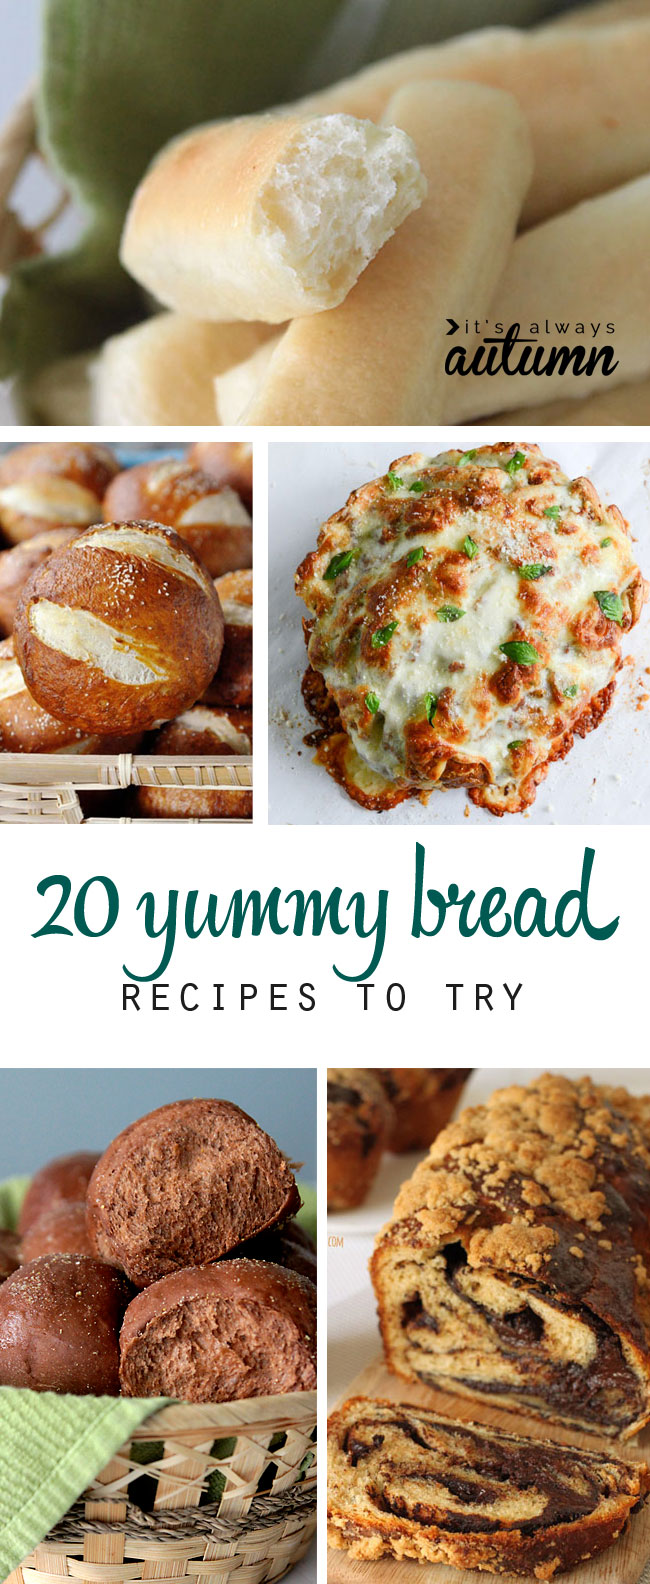 20 amazing bread recipes to try - from easy breadsticks to pretzel rolls, pizza bread, and more!